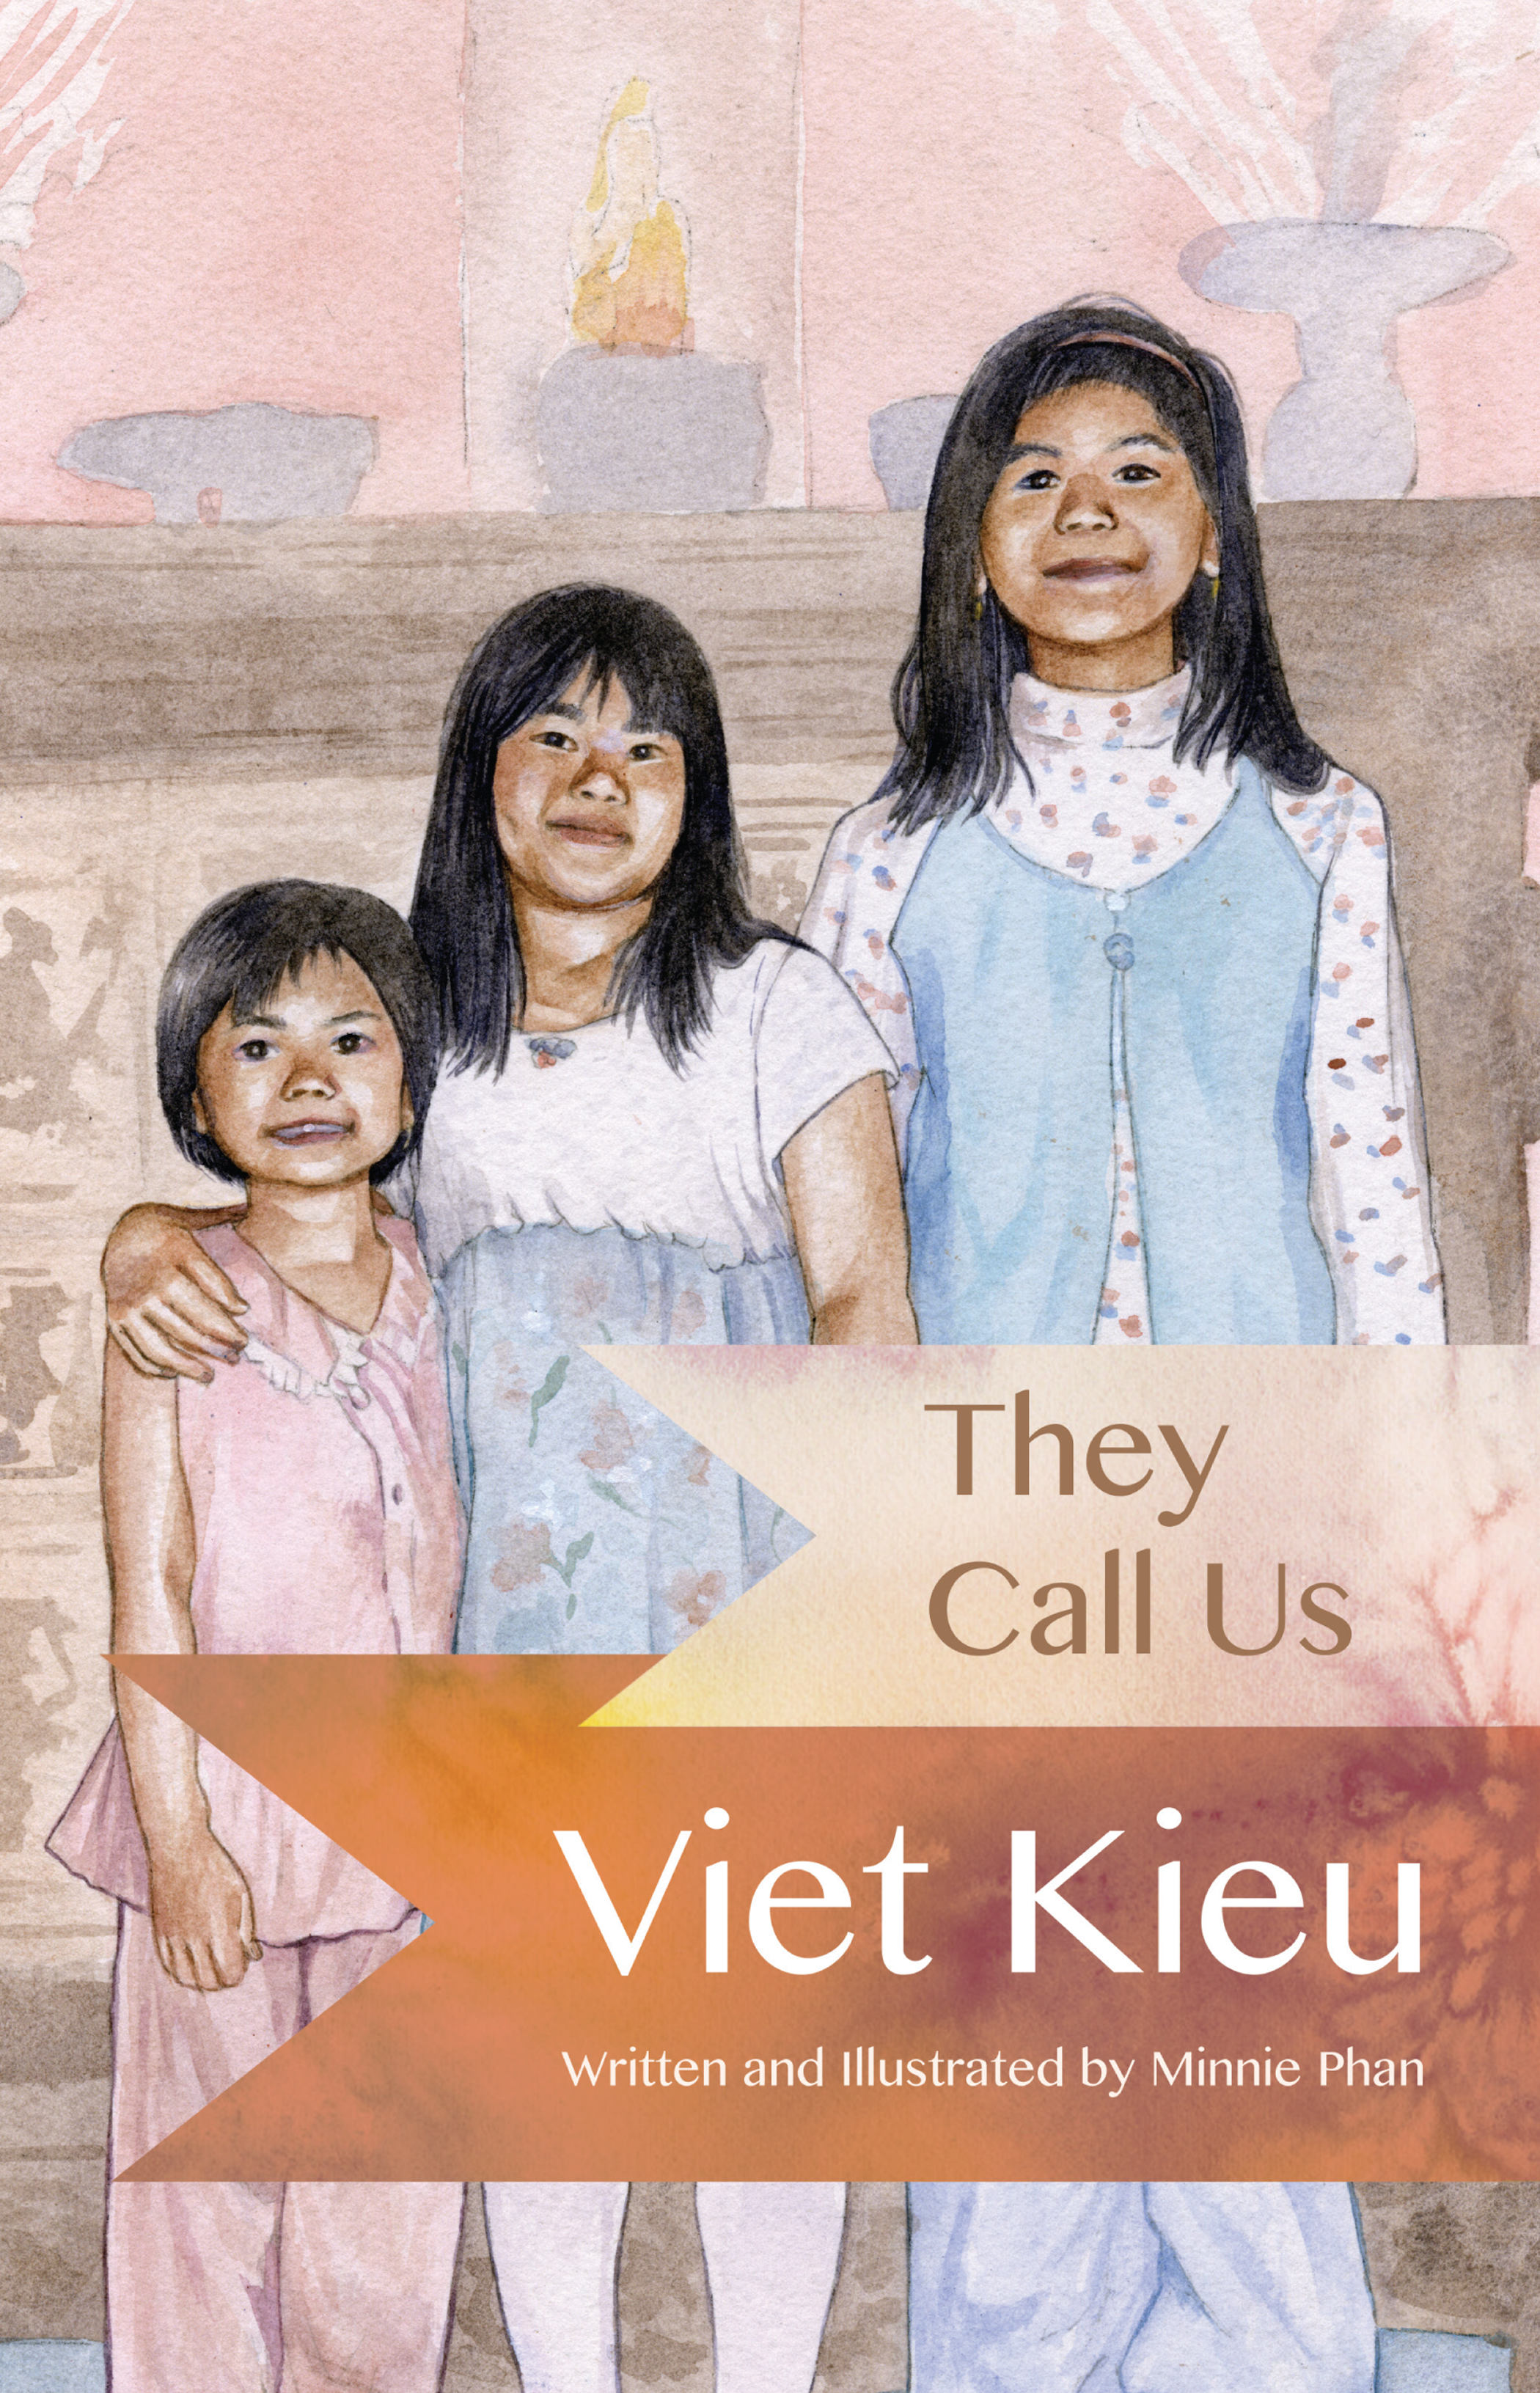 They Call Us Viet Kieu - They Call Us Viet Kieu is a crowdfunded 32-page full color book about my parent's story as refugees from Vietnam and my own solo journey back to the country they fled. Since it's publication in 2013, it as been admitted into libraries (San Francisco Public Library, California College of the Arts, University of California, Davis, University of Wisconsin‑Madison) and community organizations in CA, NY, TX, OR, and WA. In 2015 at YBCA it joined the permanent zine collection of the Alien She exhibition about the Riot Grrrl Movement.